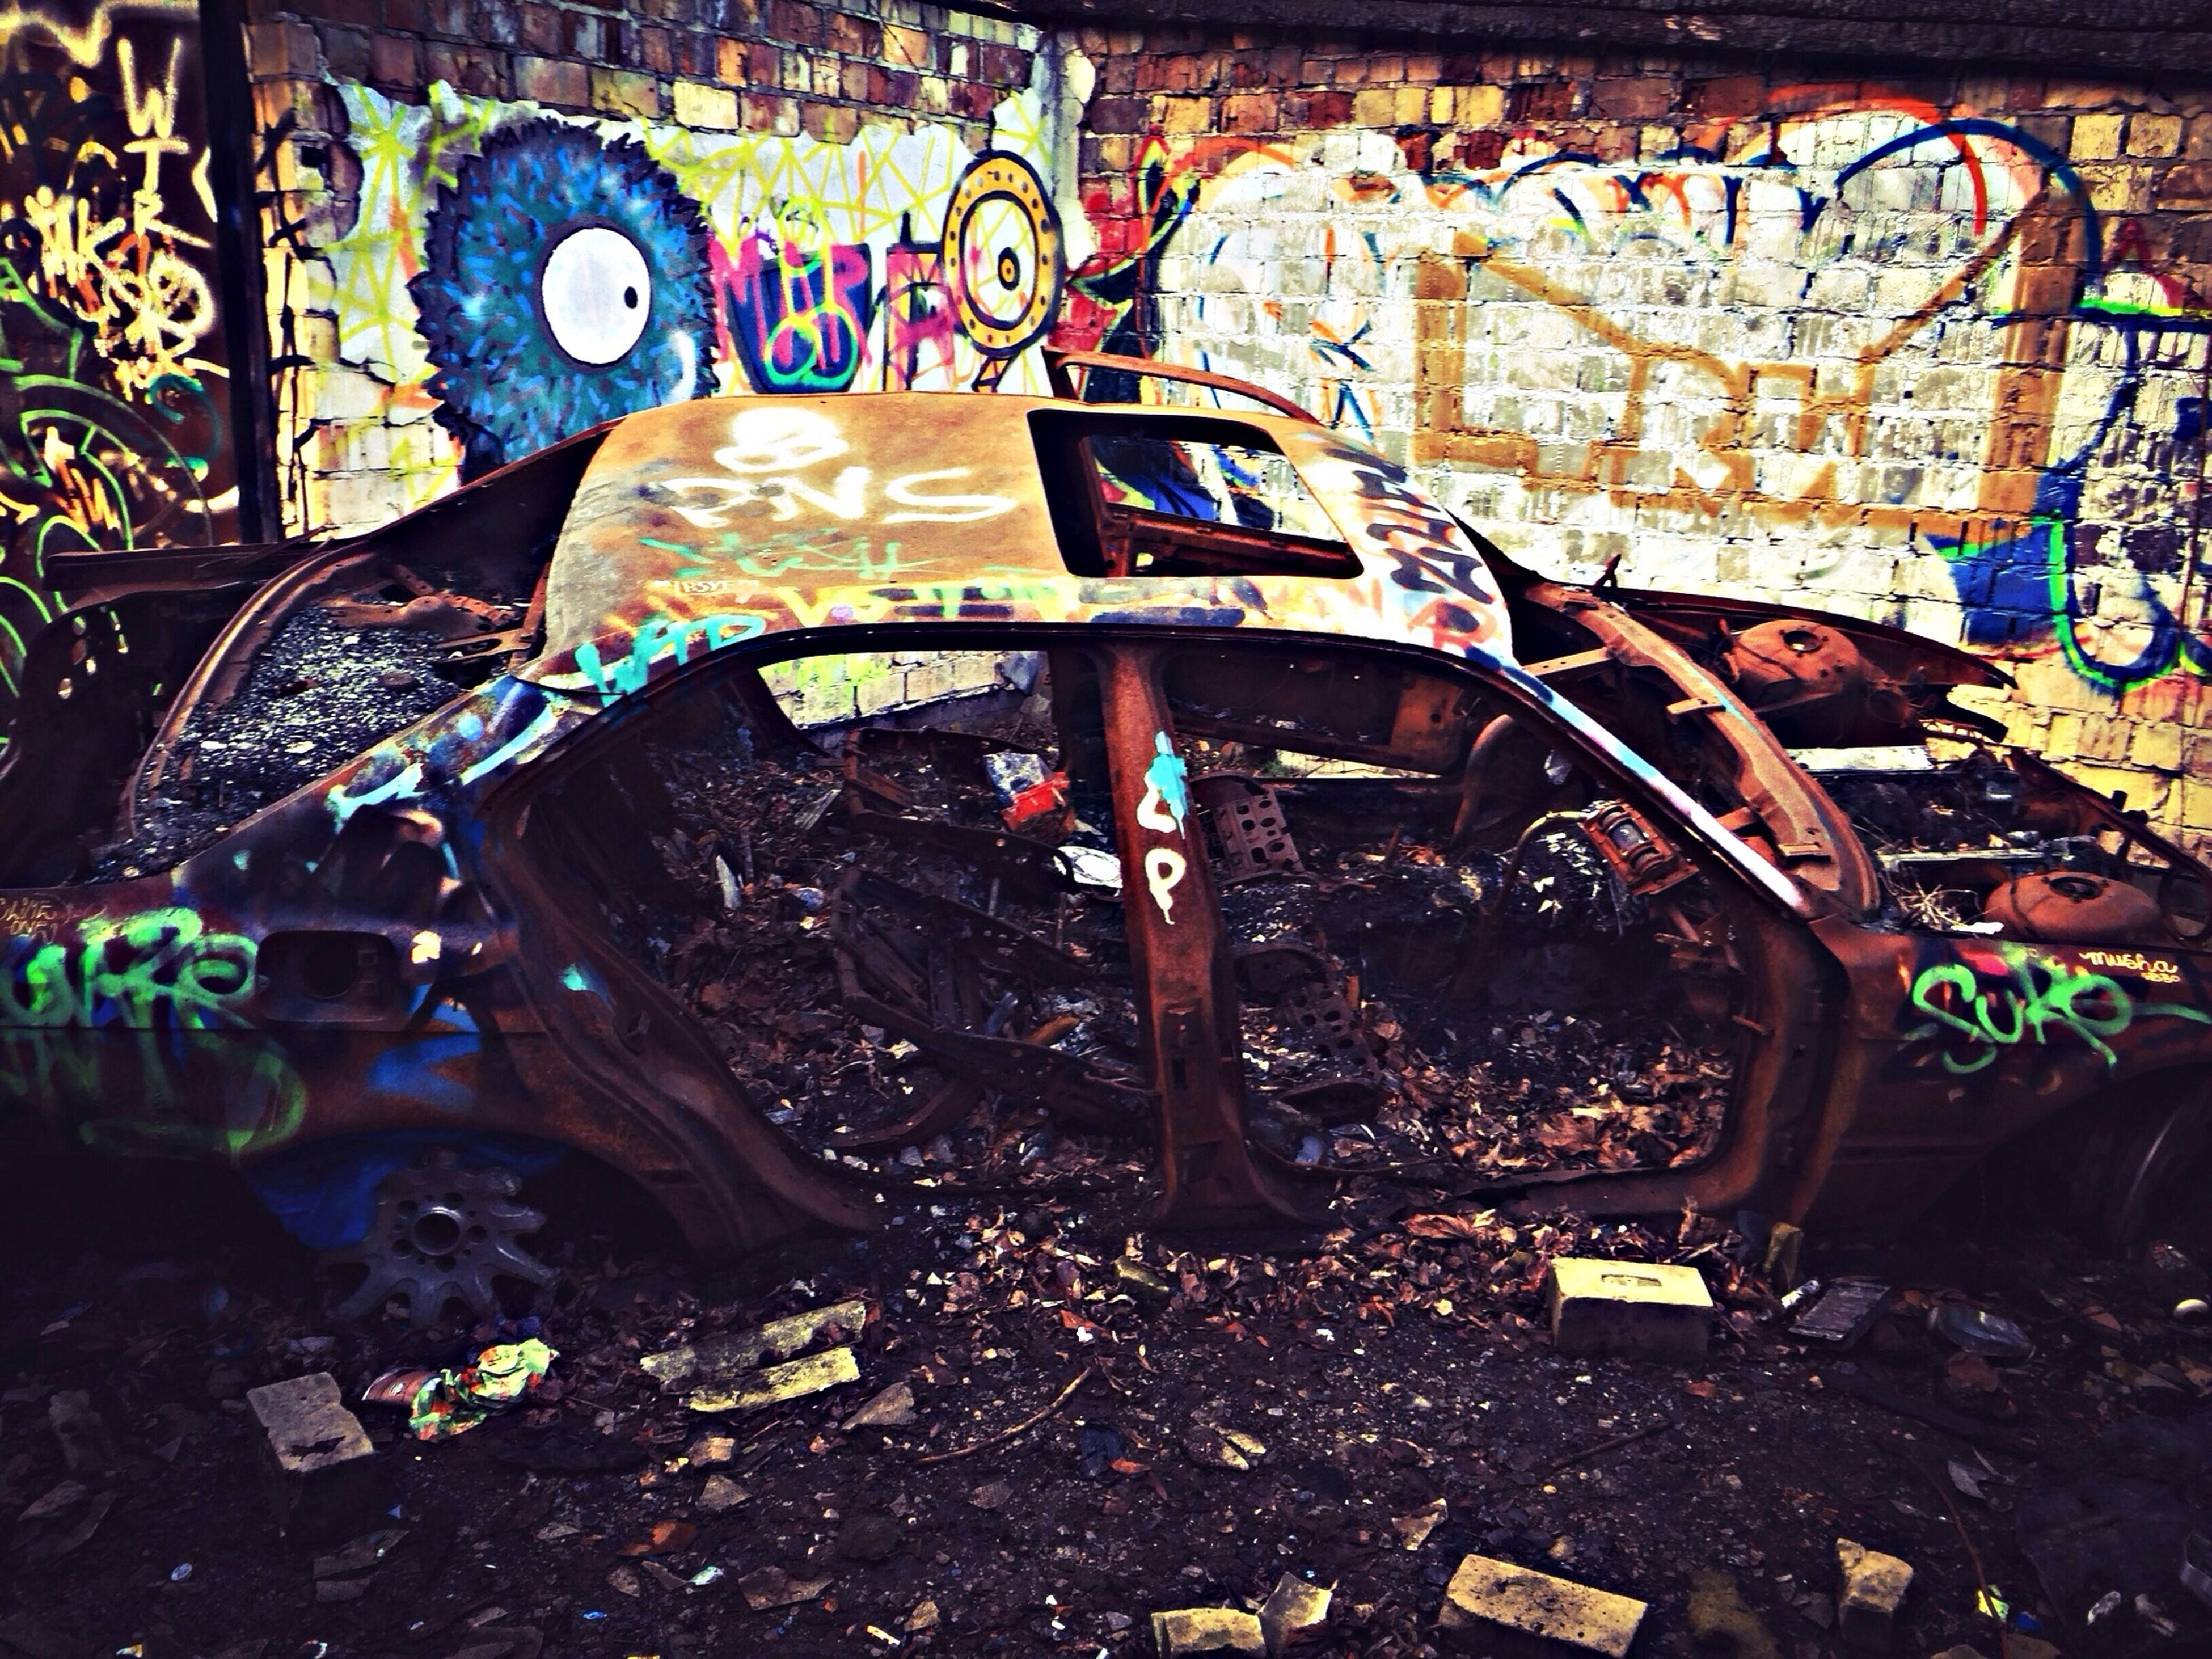 abandoned, high angle view, obsolete, land vehicle, large group of objects, abundance, built structure, messy, architecture, indoors, transportation, day, damaged, auto post production filter, old, graffiti, mode of transport, no people, chair